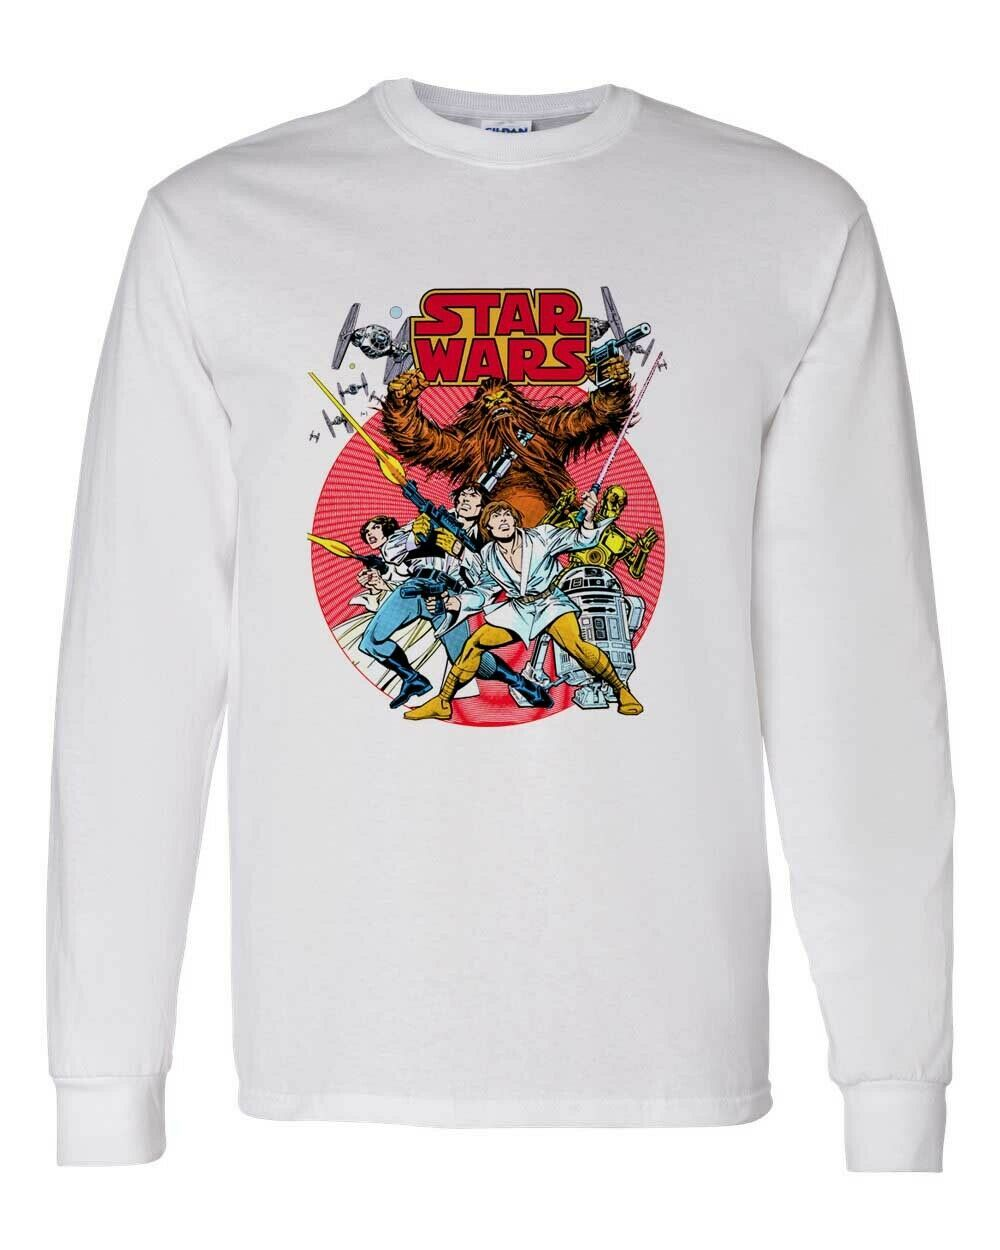 Star Wars Comics Long Sleeve T-shirt retro 1970's Marvel Comics cotton tee